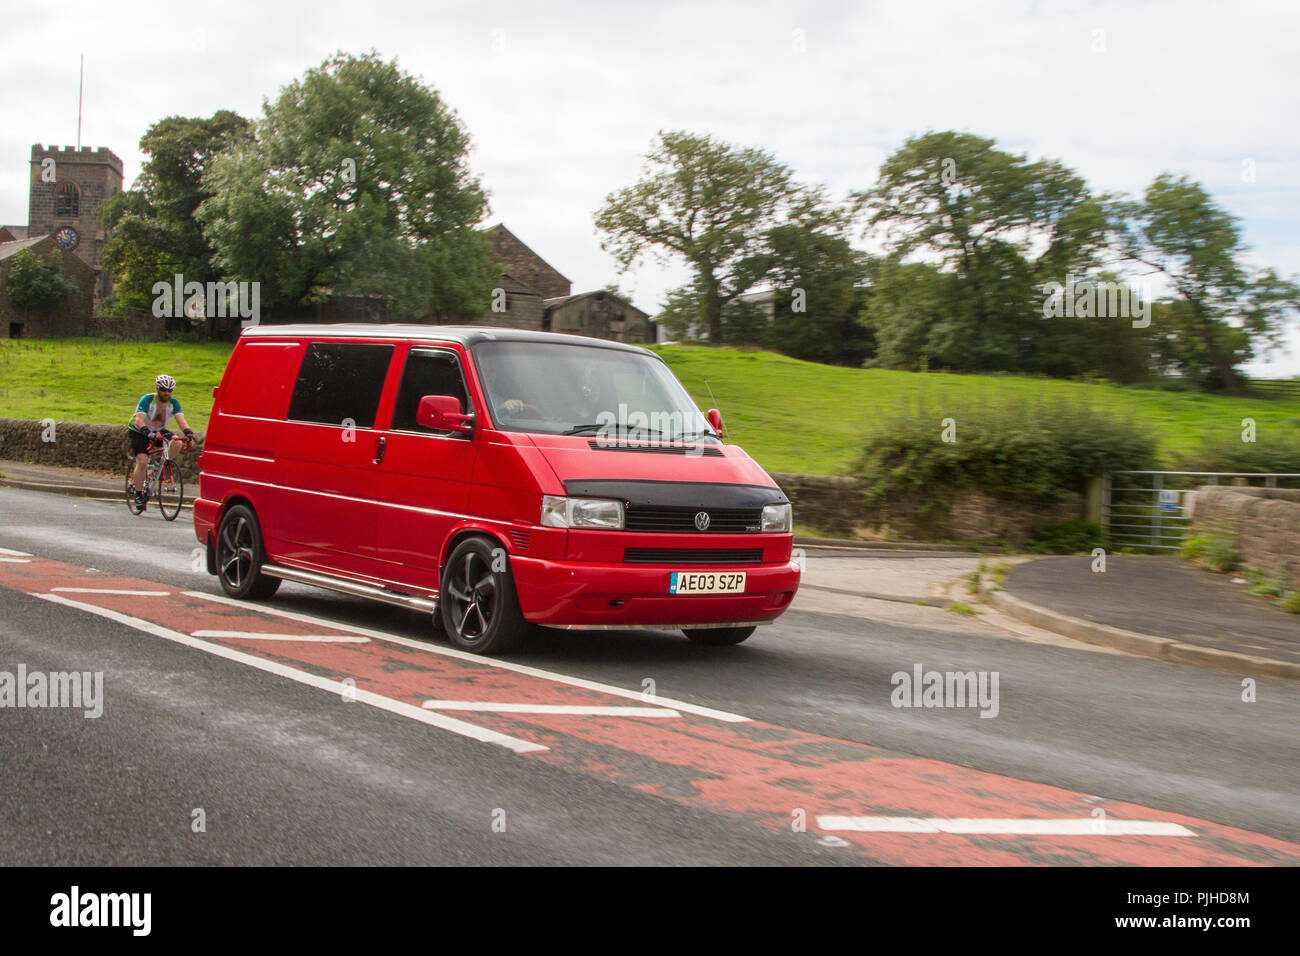 2003 Volkswagen Transporter TDI SWB Classic, vintage, veteran, cars of yesteryear, restored collectibles at Hoghton Tower Car Rally, UK - Stock Image